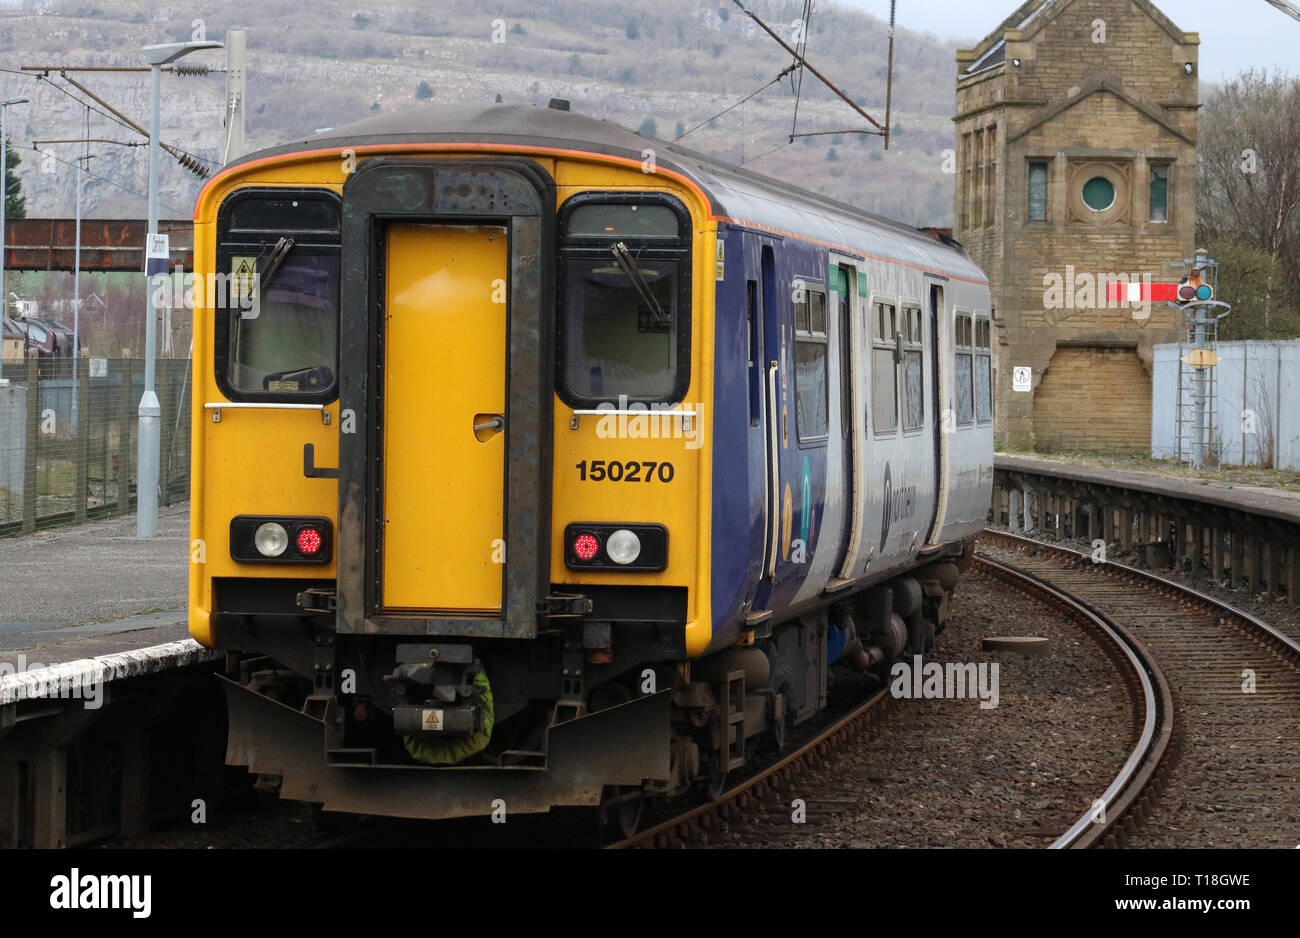 Class 150 sprinter diesel mutiple unit in Northern livery leaving Carnforth railway station with an ordinary passenger service on 21st March 2019. - Stock Image